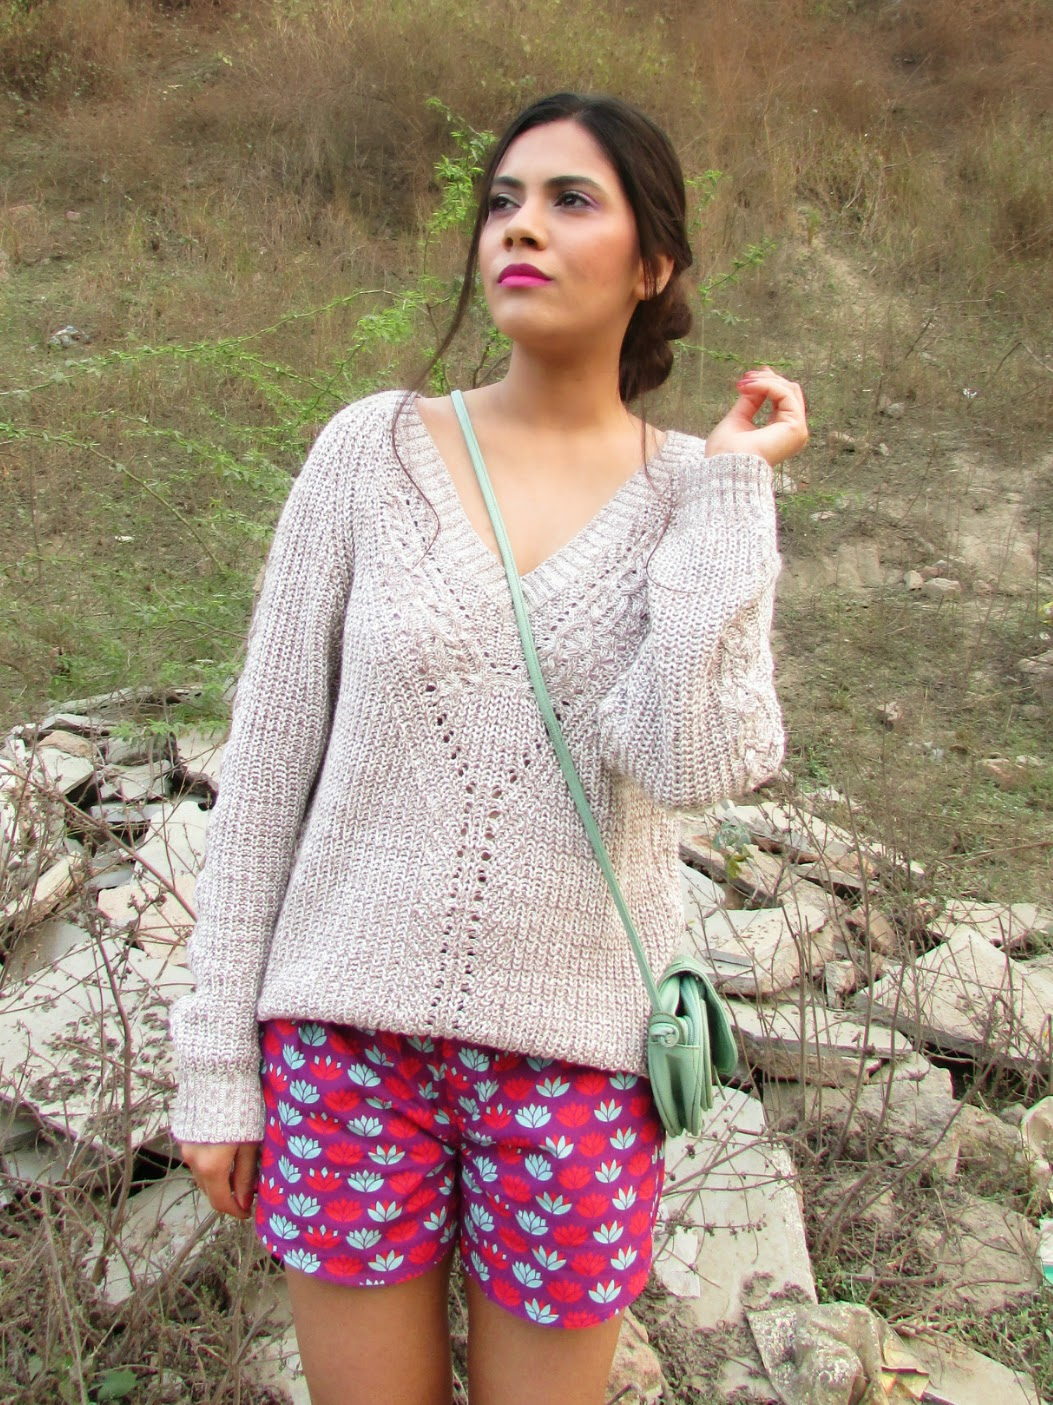 how to style shorts for winter, indiacircus, shorts, lotus shorts, cotton printed shorts, cheap shorts india online, lilac makeup, indiacircus review, ankle boots, colorful shorts, comfortable shorts, modern indian print, fusion shorts, indian fashion blog, Statement necklace, necklace, statement necklaces, big necklace, heavy necklaces , gold necklace, silver necklace, silver statement necklace, gold statement necklace, studded statement necklace , studded necklace, stone studded necklace, stone necklace, stove studded statement necklace, stone statement necklace, stone studded gold statement necklace, stone studded silver statement necklace, black stone necklace, black stone studded statement necklace, black stone necklace, black stone statement necklace, neon statement necklace, neon stone statement necklace, black and silver necklace, black and gold necklace, blank and silver statement necklace, black and gold statement necklace, silver jewellery, gold jewellery, stove jewellery, stone studded jewellery, imitation jewellery, artificial jewellery, junk jewellery, cheap jewellery ,indiacircus Statement necklace, indiacircus necklace, indiacircus statement necklaces,indiacircus big necklace, indiacircus heavy necklaces , indiacircus gold necklace, indiacircus silver necklace, indiacircus silver statement necklace,indiacircus gold statement necklace, indiacircus studded statement necklace , indiacircus studded necklace, indiacircus stone studded necklace, indiacircus stone necklace, indiacircus stove studded statement necklace, indiacircus stone statement necklace, indiacircus stone studded gold statement necklace, indiacircus stone studded silver statement necklace, indiacircus black stone necklace, indiacircus black stone studded statement necklace, indiacircus black stone necklace, indiacircus black stone statement necklace, indiacircus neon statement necklace, indiacircus neon stone statement necklace, indiacircus black and silver necklace, indiacircus black and gold necklace, indiacircus black  and silver statement necklace, indiacircus black and gold statement necklace, silver jewellery, indiacircus gold jewellery, eyeboxs stove jewellery, indiacircus stone studded jewellery, indiacircus imitation jewellery, indiacircus artificial jewellery, indiacircus junk jewellery, indiacircus cheap jewellery ,Cheap Statement necklace, Cheap necklace, Cheap statement necklaces,Cheap big necklace, Cheap heavy necklaces , Cheap gold necklace, Cheap silver necklace, Cheap silver statement necklace,Cheap gold statement necklace, Cheap studded statement necklace , Cheap studded necklace, Cheap stone studded necklace, Cheap stone necklace, Cheap stove studded statement necklace, Cheap stone statement necklace, Cheap stone studded gold statement necklace, Cheap stone studded silver statement necklace, Cheap black stone necklace, Cheap black stone studded statement necklace, Cheap black stone necklace, Cheap black stone statement necklace, Cheap neon statement necklace, Cheap neon stone statement necklace, Cheap black and silver necklace, Cheap black and gold necklace, Cheap black  and silver statement necklace, Cheap black and gold statement necklace, silver jewellery, Cheap gold jewellery, Cheap stove jewellery, Cheap stone studded jewellery, Cheap imitation jewellery, Cheap artificial jewellery, Cheap junk jewellery, Cheap cheap jewellery , Black pullover, black and grey pullover, black and white pullover, back cutout, back cutout pullover, back cutout sweater, back cutout jacket, back cutout top, back cutout tee, back cutout tee shirt, back cutout shirt, back cutout dress, back cutout trend, back cutout summer dress, back cutout spring dress, back cutout winter dress, High low pullover, High low sweater, High low jacket, High low top, High low tee, High low tee shirt, High low shirt, High low dress, High low trend, High low summer dress, High low spring dress, High low winter dress,indiacircus Black pullover, indiacircus black and grey pullover, indiacircus black and white pullover, indiacircus back cutout, indiacircus back cutout pullover, indiacircus back cutout sweater, indiacircus back cutout jacket, indiacircus back cutout top, indiacircus back cutout tee, indiacircus back cutout tee shirt, indiacircus back cutout shirt, indiacircus back cutout dress, I indiacircus back cutout trend, indiacircus back cutout summer dress, indiacircus back cutout spring dress, indiacircus back cutout winter dress, indiacircus High low pullover, indiacircus High low sweater, indiacircus High low jacket, indiacircus High low top, indiacircus High low tee, indiacircus High low tee shirt, indiacircus High low shirt, indiacircus High low dress, indiacircus High low trend, indiacircus High low summer dress, indiacircus High low spring dress, indiacircus High low winter dress, Cropped, cropped tee,cropped tee shirt , cropped shirt, cropped sweater, cropped pullover, cropped cardigan, cropped top, cropped tank top, Cheap Cropped, cheap cropped tee,cheap cropped tee shirt ,cheap  cropped shirt, cheap cropped sweater, cheap cropped pullover, cheap cropped cardigan,cheap  cropped top, cheap cropped tank top,eyeboxs Cropped, indiacircus cropped tee, indiacircus cropped tee shirt , indiacircus cropped shirt, indiacircus cropped sweater, indiacircus cropped pullover, indiacircus cropped cardigan, indiacircus cropped top, indiacircus cropped  top, winter Cropped, winter cropped tee, winter cropped tee shirt , winter cropped shirt, winter cropped sweater, winter cropped pullover, winter cropped cardigan, winter cropped top, winter cropped tank top,Leggings, winter leggings, warm leggings, winter warm leggings, fall leggings, fall warm leggings, tights, warm tights, winter tights, winter warm tights, fall tights, fall warm tights,indiacircus leggings, indiacircus tights, warm warm leggings, indiacircus warm tights, indiacircus winter warm tights, indiacircus fall warm tights, woollen tights , woollen leggings, eyeboxs woollen tights, indiacircus woollen leggings, woollen bottoms, indiacircus woollen bottoms, indiacircus woollen pants, woollen pants,Christmas , Christmas leggings, Christmas tights, lovelyshoes Christmas, lovelyshoes Christmas clothes, clothes for Christmas , eyeboxs Christmas leggings, eyeboxs Christmas tights, eyeboxs warm Christmas leggings, eyeboxs warm Christmas  tights, eyeboxs snowflake leggings, snowflake leggings, snowflake tights, eyeboxs rain deer tights, eyeboxs rain deer leggings, ugly Christmas sweater, Christmas tree, Christmas clothes, Santa clause,Wishlist, clothes wishlist, indiacircus wishlist, indiacircus, indiacircus.net , indiacircus wishlist, autumn wishlist,autumn indiacircus wishlist, indiacircus.com,autumn clothes wishlist, autumn shoes wishlist, autumn bags wishlist, autumn boots wishlist, autumn pullovers wishlist, autumn cardigans wishlist, autymn coats wishlist, indiacircus clothes wishlist, indiacircus bags wishlist, indiacircus bags wishlist, indiacircus boots wishlist, indiacircus pullover wishlist, indiacircus cardigans wishlist, indiacircus autum clothes wishlist, winter clothes, wibter clothes wishlist, winter wishlist, wibter pullover wishlist, winter bags wishlist, winter boots wishlist, winter cardigans wishlist, winter leggings wishlist, indiacircus winter clothes, indiacircus autumn clothes, indiacircus winter collection,indiacircus autumn collection,Cheap clothes online,cheap dresses online, cheap jumpsuites online, cheap leggings online, cheap shoes online, cheap wedges online , cheap skirts online, cheap jewellery online, cheap jackets online, cheap jeans online, cheap maxi online, cheap makeup online, cheap cardigans online, cheap accessories online, cheap coats online,cheap brushes online,cheap tops online, chines clothes online, Chinese clothes,Chinese jewellery ,Chinese jewellery online,Chinese heels online,Chinese electronics online,Chinese garments,Chinese garments online,Chinese products,Chinese products online,Chinese accessories online,Chinese inline clothing shop,Chinese online shop,Chinese online shoes shop,Chinese online jewellery shop,Chinese cheap clothes online,Chinese  clothes shop online, korean online shop,korean garments,korean makeup,korean makeup shop,korean makeup online,korean online clothes,korean online shop,korean clothes shop online,korean dresses online,korean dresses online,cheap Chinese clothes,cheap korean clothes,cheap Chinese makeup,cheap korean makeup,cheap korean shopping ,cheap Chinese shopping,cheap Chinese online shopping,cheap korean online shopping,cheap Chinese shopping website,cheap korean shopping website, cheap online shopping,online shopping,how to shop online ,how to shop clothes online,how to shop shoes online,how to shop jewellery online,how to shop mens clothes online, mens shopping online,boys shopping online,boys jewellery online,mens online shopping,mens online shopping website,best Chinese shopping website, Chinese online shopping website for men,best online shopping website for women,best korean online shopping,best korean online shopping website,korean fashion,korean fashion for women,korean fashion for men,korean fashion for girls,korean fashion for boys,best chinese online shopping,best chinese shopping website,best chinese online shopping website,wholesale chinese shopping website,wholesale shopping website,chinese wholesale shopping online,chinese wholesale shopping, chinese online shopping on wholesale prices, clothes on wholesale prices,cholthes on wholesake prices,clothes online on wholesales prices,online shopping, online clothes shopping, online jewelry shopping,how to shop online, how to shop clothes online, how to shop earrings online, how to shop,skirts online, dresses online,jeans online, shorts online, tops online, blouses online,shop tops online, shop blouses online, shop skirts online, shop dresses online, shop botoms online, shop summer dresses online, shop bracelets online, shop earrings online, shop necklace online, shop rings online, shop highy low skirts online, shop sexy dresses onle, men's clothes online, men's shirts online,men's jeans online, mens.s jackets online, mens sweaters online, mens clothes, winter coats online, sweaters online, cardigens online,beauty , fashion,beauty and fashion,beauty blog, fashion blog , indian beauty blog,indian fashion blog, beauty and fashion blog, indian beauty and fashion blog, indian bloggers, indian beauty bloggers, indian fashion bloggers,indian bloggers online, top 10 indian bloggers, top indian bloggers,top 10 fashion bloggers, indian bloggers on blogspot,home remedies, how to,indiacircus online shopping,indiacircus online shopping review,indiacircus.com review,indiacircus online clothing store,indiacircus online chinese store,indiacircus online shopping,indiacircus site review,indiacircus.com site review, indiacircus Chines fashion, indiacircus , indiacircus.com, indiacircus clothing, indiacircus dresses, indiacircus shoes, indiacircus accessories,indiacircus men cloths ,indiacircus makeup, indiacircus helth products,indiacircus Chinese online shopping, indiacircus Chinese store, indiacircus online chinese shopping, indiacircus lchinese shopping online,indiacircus, indiacircus dresses, indiacircus clothes, indiacircus garments, indiacircus clothes, indiacircus skirts, indiacircus pants, indiacircus tops, indiacircus cardigans, indiacircus leggings, indiacircus fashion , indiacircus clothes fashion, indiacircus footwear, indiacircus fashion footwear, indiacircus jewellery, indiacircus fashion jewellery, indiacircus rings, indiacircus necklace, indiacircus bracelets, indiacircus earings,Autumn, fashion, indiacircus, wishlist,Winter,fall, fall abd winter, winter clothes , fall clothes, fall and winter clothes, fall jacket, winter jacket, fall and winter jacket, fall blazer, winter blazer, fall and winter blazer, fall coat , winter coat, falland winter coat, fall coverup, winter coverup, fall and winter coverup, outerwear, coat , jacket, blazer, fall outerwear, winter outerwear, fall and winter outerwear, woolen clothes, wollen coat, woolen blazer, woolen jacket, woolen outerwear, warm outerwear, warm jacket, warm coat, warm blazer, warm sweater, coat , white coat, white blazer, white coat, white woolen blazer, white coverup, white woolens, indiacircus online shopping review,indiacircus.com review,indiacircus online clothing store,indiacircus online chinese store,indiacircus online shopping,indiacircus site review, indiacircus.com site review, indiacircus Chines fashion, indiacircus, indiacircus.com, indiacircus clothing, indiacircus dresses, indiacircus shoes, indiacircus accessories,indiacircus men cloths ,indiacircus makeup, indiacircus helth products,indiacircus Chinese online shopping, indiacircus Chinese store, indiacircus online chinese shopping, indiacircus chinese shopping online,indiacircus, indiacircus dresses, indiacircus clothes, indiacircus garments, indiacircus clothes, indiacircus skirts, indiacircus pants, indiacircus tops, indiacircus cardigans, indiacircus leggings, indiacircus fashion , indiacircus clothes fashion, indiacircus footwear, indiacircus fashion footwear, indiacircus jewellery, indiacircus fashion jewellery, indiacircus rings, indiacircus necklace, indiacircus bracelets, indiacircus earings,latest fashion trends online, online shopping, online shopping in india, online shopping in india from america, best online shopping store , best fashion clothing store, best online fashion clothing store, best online jewellery store, best online footwear store, best online store, beat online store for clothes, best online store for footwear, best online store for jewellery, best online store for dresses, worldwide shipping free, free shipping worldwide, online store with free shipping worldwide,best online store with worldwide shipping free,low shipping cost, low shipping cost for shipping to india, low shipping cost for shipping to asia, low shipping cost for shipping to korea,Friendship day , friendship's day, happy friendship's day, friendship day outfit, friendship's day outfit, how to wear floral shorts, floral shorts, styling floral shorts, how to style floral shorts, how to wear shorts, how to style shorts, how to style style denim shorts, how to wear denim shorts,how to wear printed shorts, how to style printed shorts, printed shorts, denim shorts, how to style black shorts, how to wear black shorts, how to wear black shorts with black T-shirts, how to wear black T-shirt, how to style a black T-shirt, how to wear a plain black T-shirt, how to style black T-shirt,how to wear shorts and T-shirt, what to wear with floral shorts, what to wear with black floral shorts,how to wear all black outfit, what to wear on friendship day, what to wear on a date, what to wear on a lunch date, what to wear on lunch, what to wear to a friends house, what to wear on a friends get together, what to wear on friends coffee date , what to wear for coffee,beauty,Pink, pink pullover, pink sweater, pink jumpsuit, pink sweatshirt, neon pink, neon pink sweater, neon pink pullover, neon pink jumpsuit , neon pink cardigan, cardigan , pink cardigan, sweater, jumper, jumpsuit, pink jumper, neon pink jumper, pink jacket, neon pink jacket, winter clothes, oversized coat, oversized winter clothes, oversized pink coat, oversized coat, oversized jacket, indiacircus pink, indiacircus pink sweater, indiacircus pink jacket, indiacircus pink cardigan, indiacircus pink coat, indiacircus pink jumper, indiacircus neon pink, indiacircus neon pink jacket, indiacircus neon pink coat, indiacircus neon pink sweater, indiacircus neon pink jumper, indiacircus neon pink pullover, pink pullover, neon pink pullover,fur,furcoat,furjacket,furblazer,fur pullover,fur cardigan,front open fur coat,front open fur jacket,front open fur blazer,front open fur pullover,front open fur cardigan,real fur, real fur coat,real fur jacket,real fur blazer,real fur pullover,real fur cardigan, soft fur,soft fur coat,soft fur jacket,soft furblazer,soft fur pullover,sof fur cardigan, white fur,white fur coat,white fur jacket,white fur blazer, white fur pullover, white fur cardigan,trench, trench coat, trench coat online, trench coat india, trench coat online India, trench cost price, trench coat price online, trench coat online price, cheap trench coat, cheap trench coat online, cheap trench coat india, cheap trench coat online India, cheap trench coat , Chinese trench coat, Chinese coat, cheap Chinese trench coat, Korean coat, Korean trench coat, British coat, British trench coat, British trench coat online, British trench coat online, New York trench coat, New York trench coat online, cheap new your trench coat, American trench coat, American trench coat online, cheap American trench coat, low price trench coat, low price trench coat online , low price trench coat online india, low price trench coat india, indiacircus trench, indiacircus trench coat, indiacircus trench coat online, indiacircus trench coat india, indiacircus trench coat online India, indiacircus trench cost price,indiacircus trench coat price online, indiacircus trench coat online price, indiacircus cheap trench coat, indiacircus indiacircus trench coat online, indiacircus cheap trench coat india, indiacircus cheap trench coat online India, indiacircus cheap trench coat , indiacircus Chinese trench coat, indiacircus Chinese coat, indiacircus cheap Chinese trench coat, indiacircus Korean coat, indiacircus Korean trench coat, indiacircus British coat, indiacircus British trench coat, indiacircus British trench coat online, indiacircus British trench coat online, indiacircus New York trench coat, indiacircus New York trench coat online, indiacircus cheap new your trench coat, indiacircus American trench coat, indiacircus American trench coat online, indiacircus cheap American trench coat, indiacircus low price trench coat, indiacircus low price trench coat online , indiacircus low price trench coat online india, indiacircus low price trench coat india, how to wear trench coat, how to wear trench, how to style trench coat, how to style coats, how to style long coats, how to style winter coats, how to style winter trench coats, how to style winter long coats, how to style warm coats, how to style beige coat, how to style beige long coat, how to style beige trench coat, how to style beige coat, beige coat, beige long coat, beige long coat, beige frock coat, beige double breasted coat, double breasted coat, how to style frock coat, how to style double breasted coat, how to wear beige trench coat,how to wear beige coat, how to wear beige long coat, how to wear beige frock coat, how to wear beige double button coat, how to wear beige double breat coat, double button coat, what us trench coat, uses of trench coat, what is frock coat, uses of frock coat, what is long coat, uses of long coat, what is double breat coat, uses of double breasted coat, what is bouton up coat, uses of button up coat, what is double button coat, uses of double button coat, velvet leggings, velvet tights, velvet bottoms, embroided velvet leggings, embroided velvet tights, pattern tights, velvet pattern tights, floral tights , floral velvet tights, velvet floral tights, embroided  velvet leggings, pattern leggings , velvet pattern leggings , floral leggings , floral velvet leggings, velvet floral leggings ,eyeboxs velvet leggings, indiacircus velvet tights, indiacircus velvet bottoms,indiacircus embroided velvet leggings,indiacircus embroided velvet tights, indiacircus pattern tights, indiacircus velvet pattern tights, indiacircus floral tights , indiacircus floral velvet tights, indiacircus velvet floral tights, indiacircus embroided  velvet leggings, indiacircus pattern leggings , indiacircus velvet pattern leggings , indiacircus floral leggings ,indiacircus floral velvet leggings, indiacircus velvet floral leggings ,indiacircus studded heels, studded heels , stud heels, valentinos , valentino heels, valentine shoes, valentino studded shoes, valentino studded heels, valentino studded sandels, black valentino, valentino footwear ,shoe sale , valentino look alikes,india , indian , indianculure , indian trends , indian clothes , indian embriodaty , clutch , sling bag , designer , designer clutch , designer sling bag , designer bag , indiacircus , indiacircus.com , indiacircus review , indiacircus.com review , indiacircus coupon , indiacircus discount coupon , indiacircus discount, krsna , krsna metha , krsna metha designer , krsna metha designs , krsna metha clutch ,krsna metha indiacircus , spring bag , bag for spring , spring clutch ,